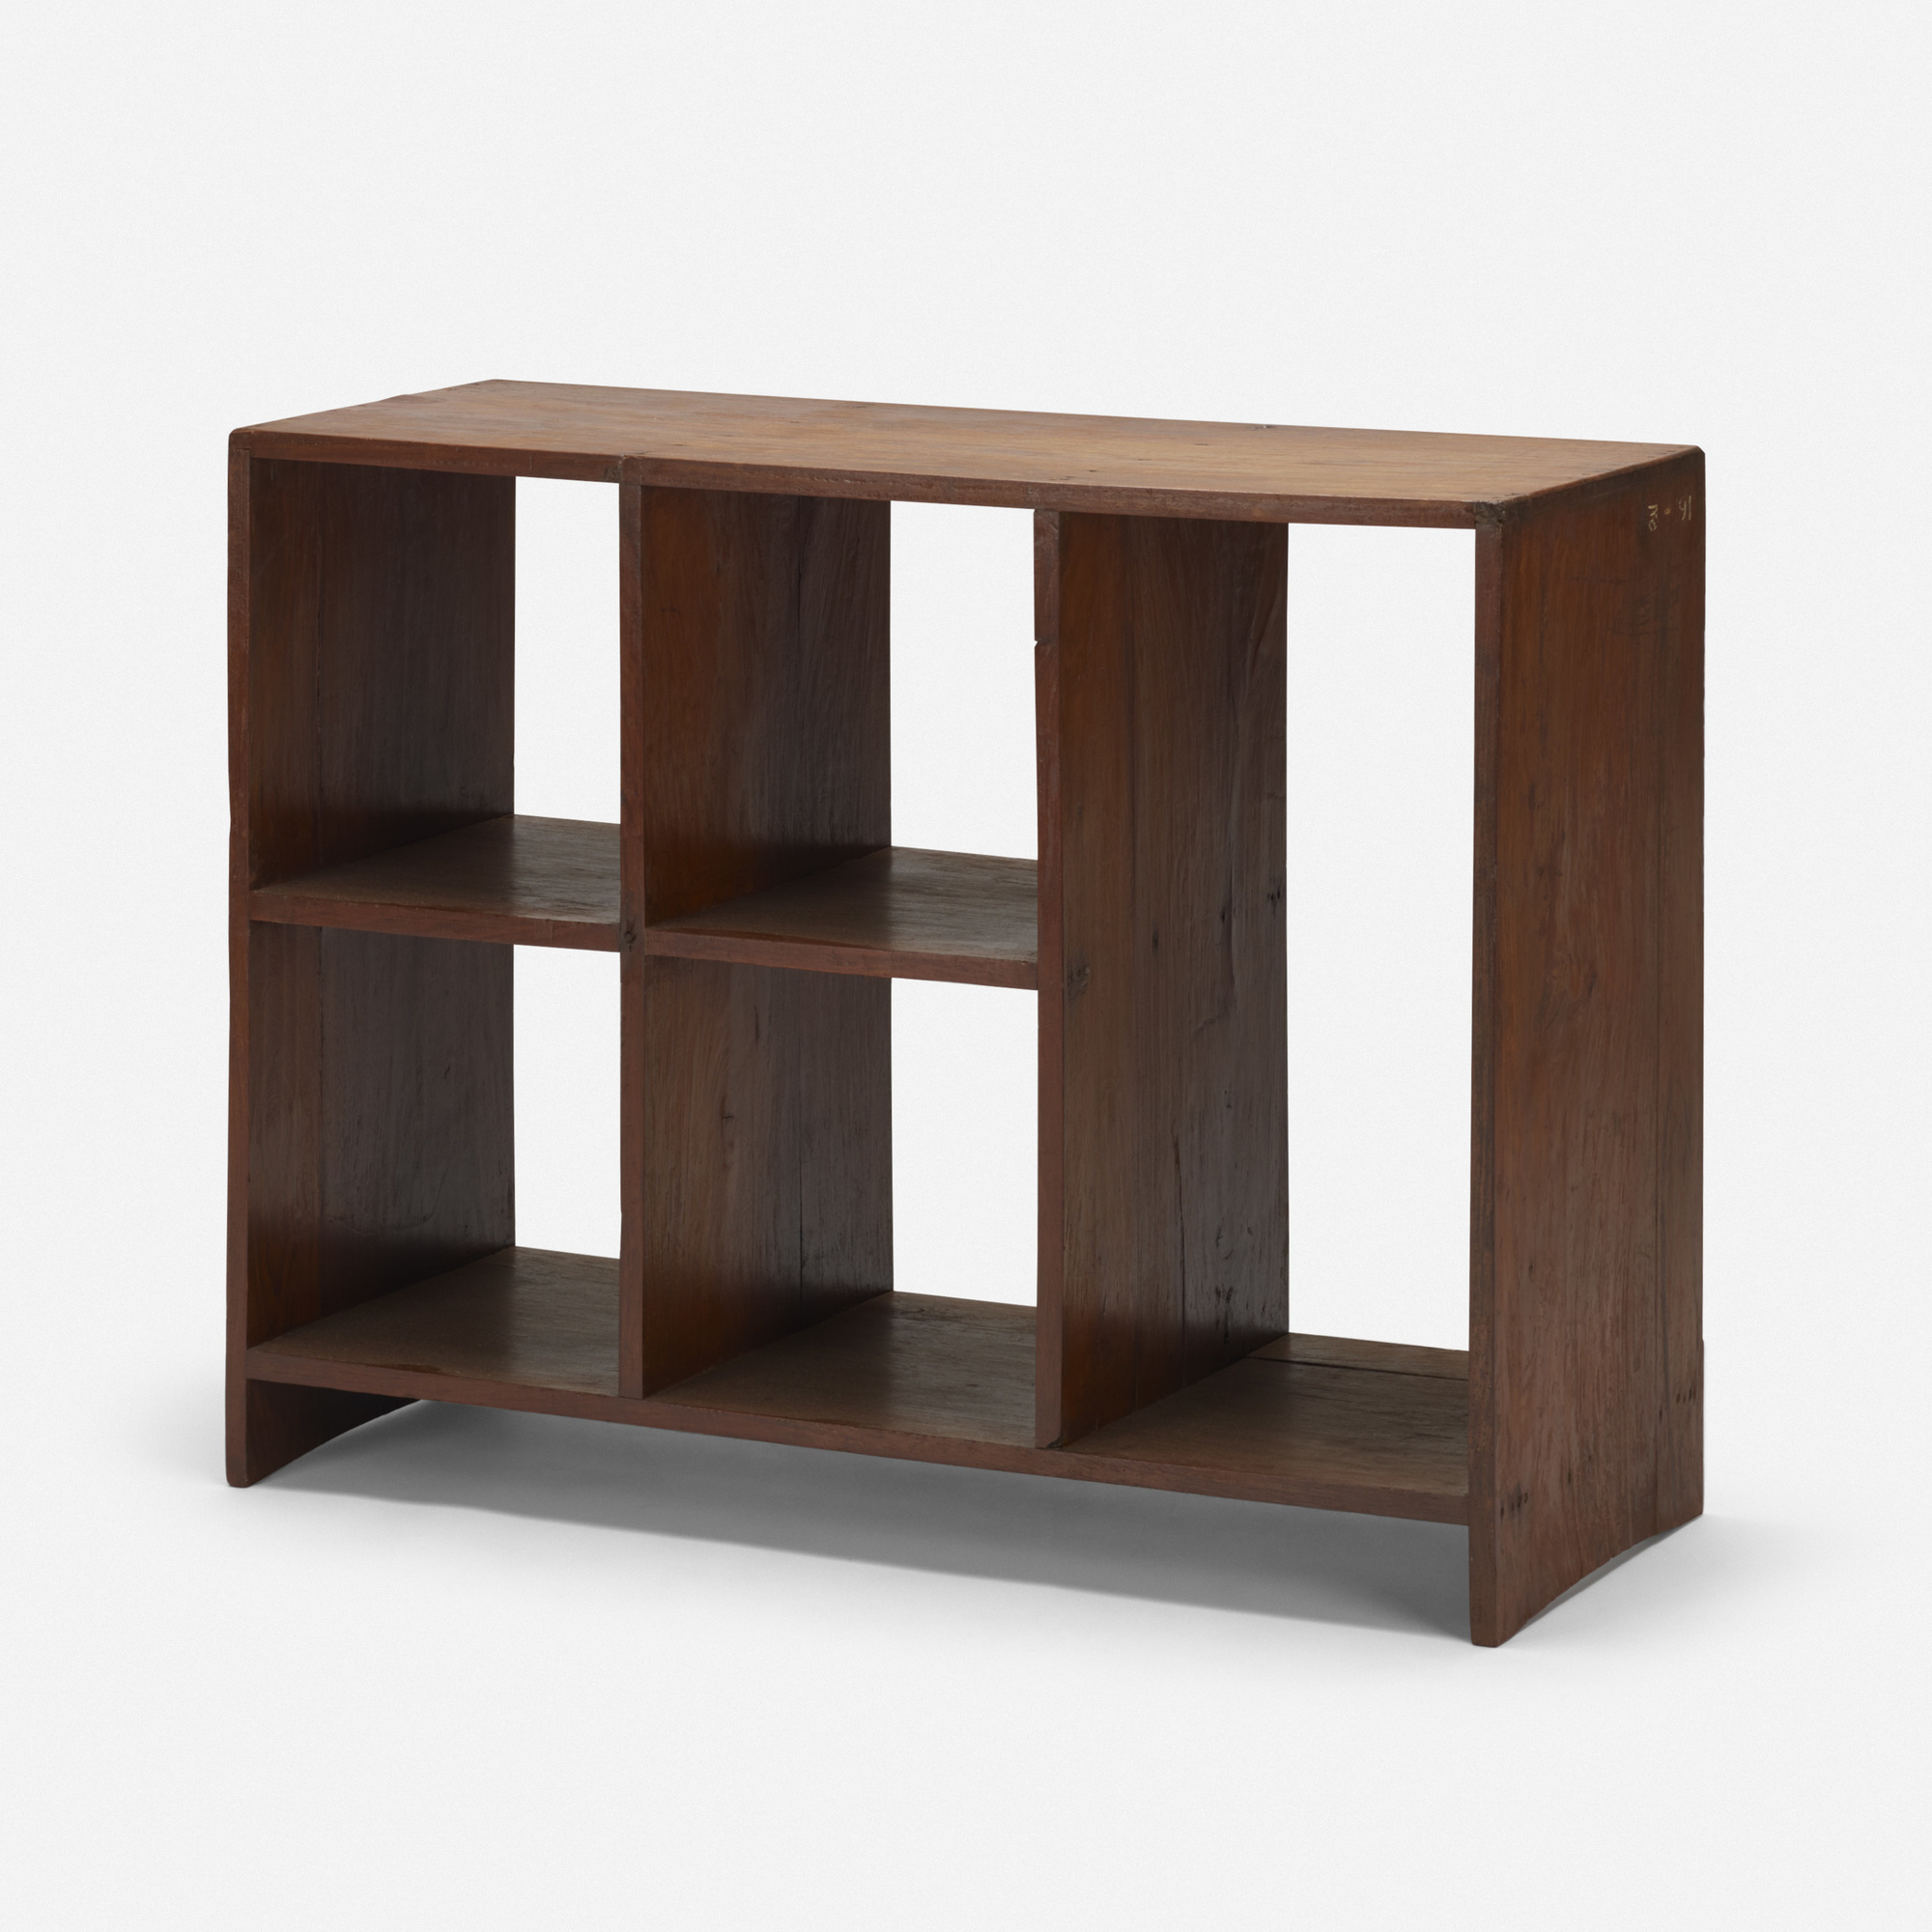 144: PIERRE JEANNERET, file rack from the Administrative